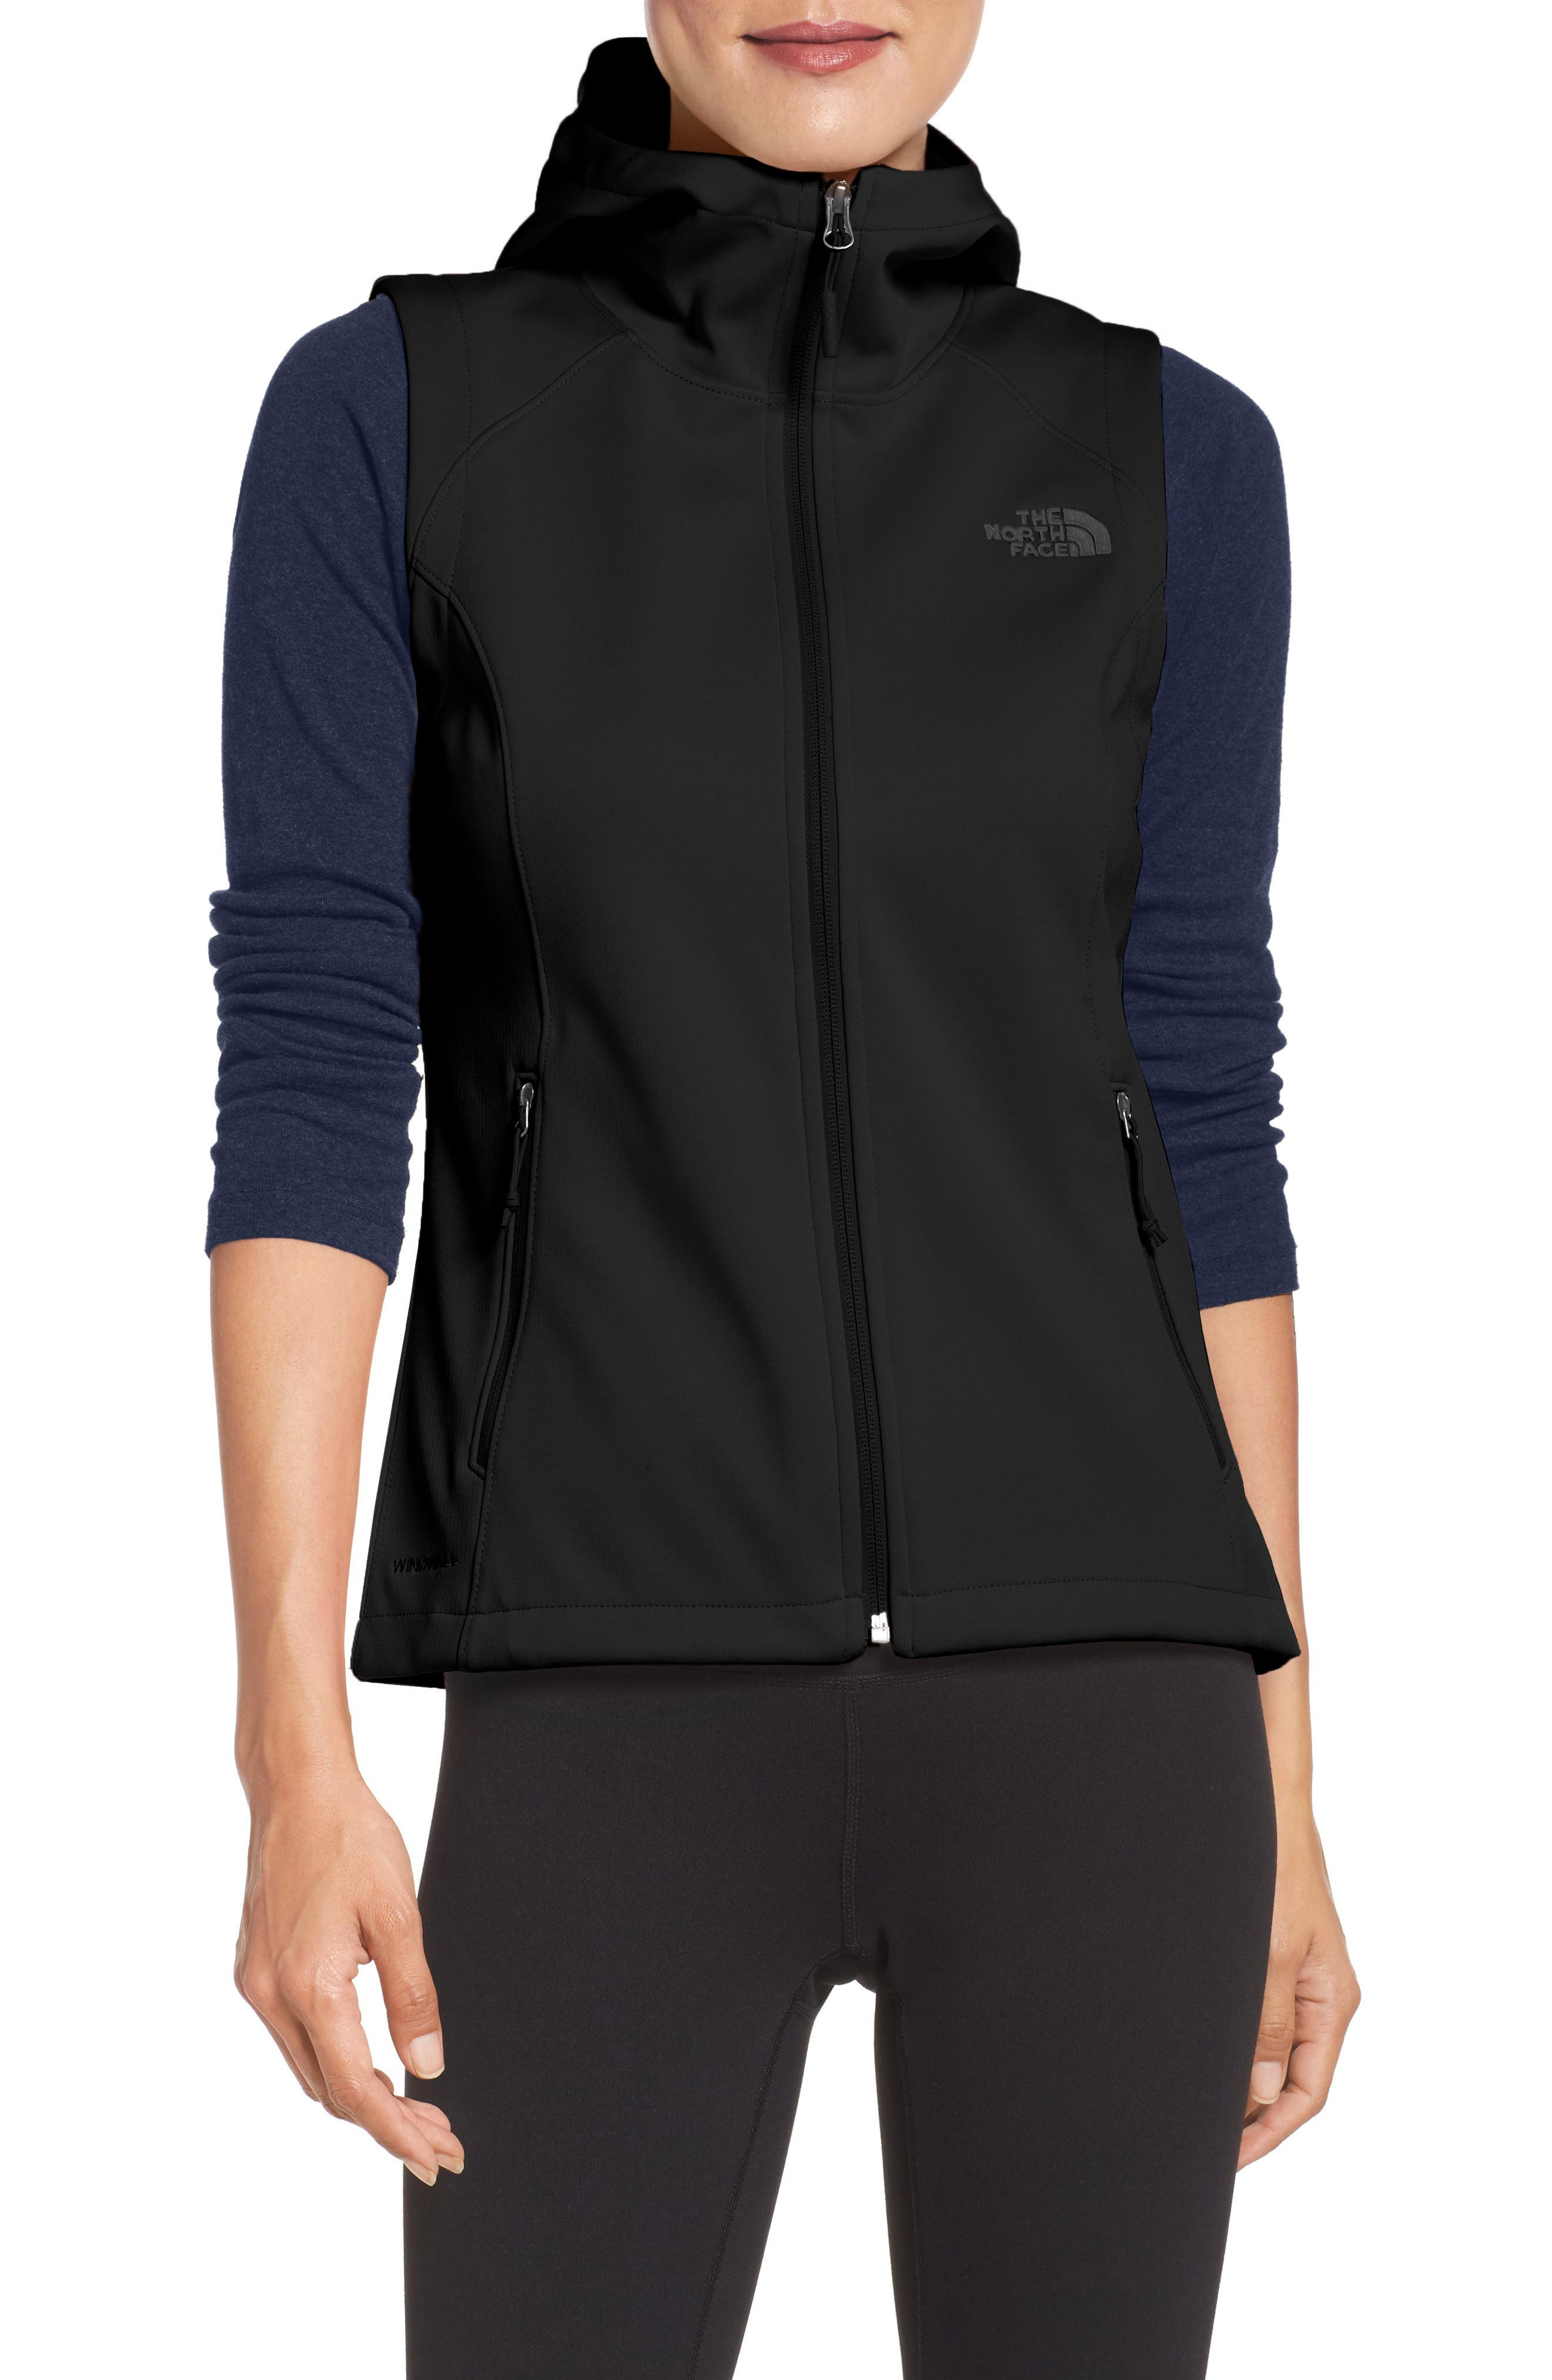 Canyonwall Hardface Fleece Vest,                         Main,                         color, Tnf Black